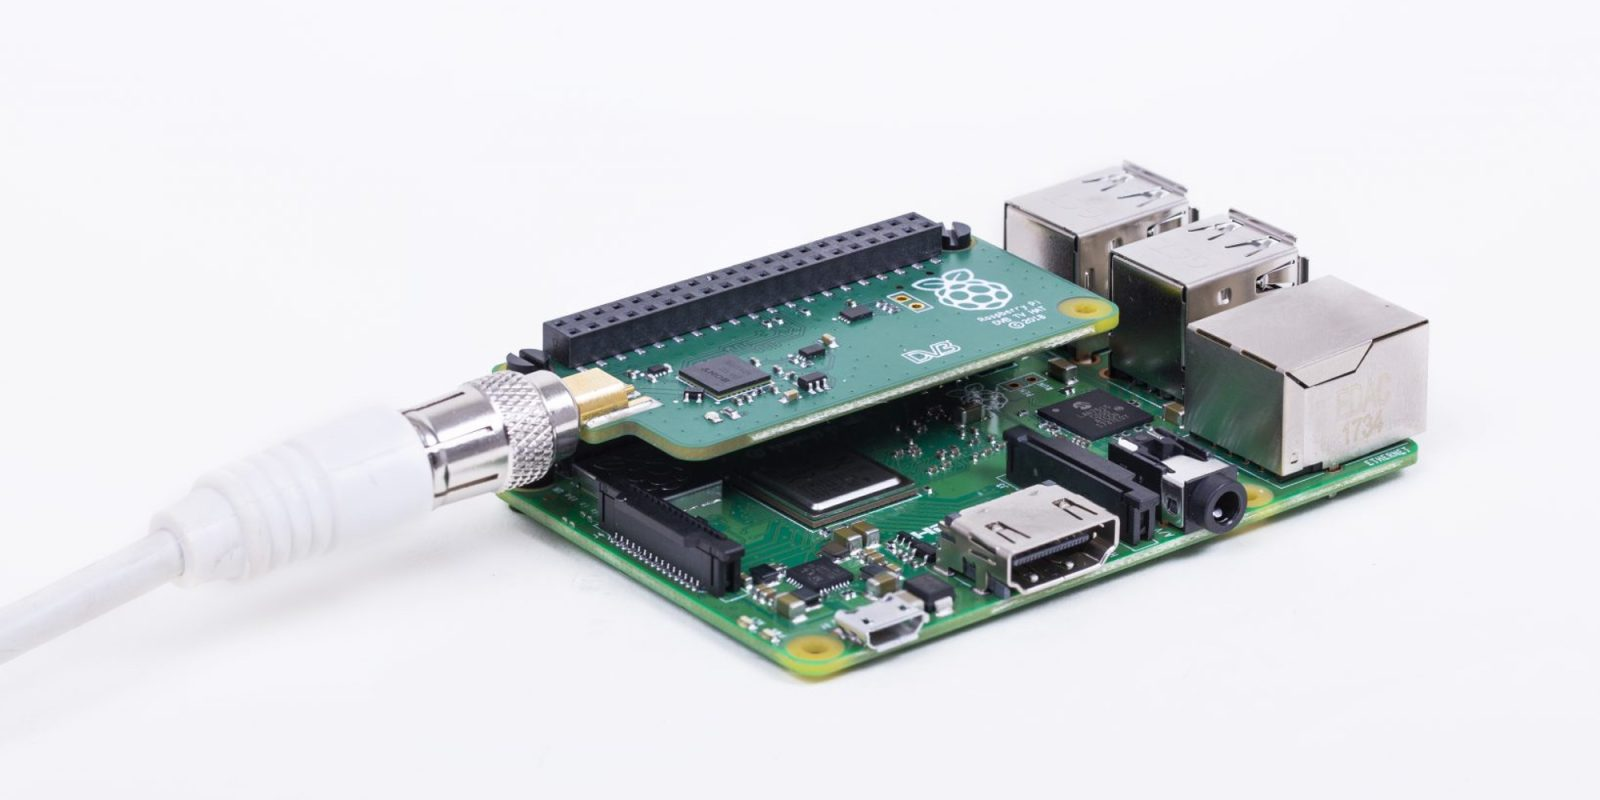 Check out the Raspberry Pi TV Hat with OTA content integration